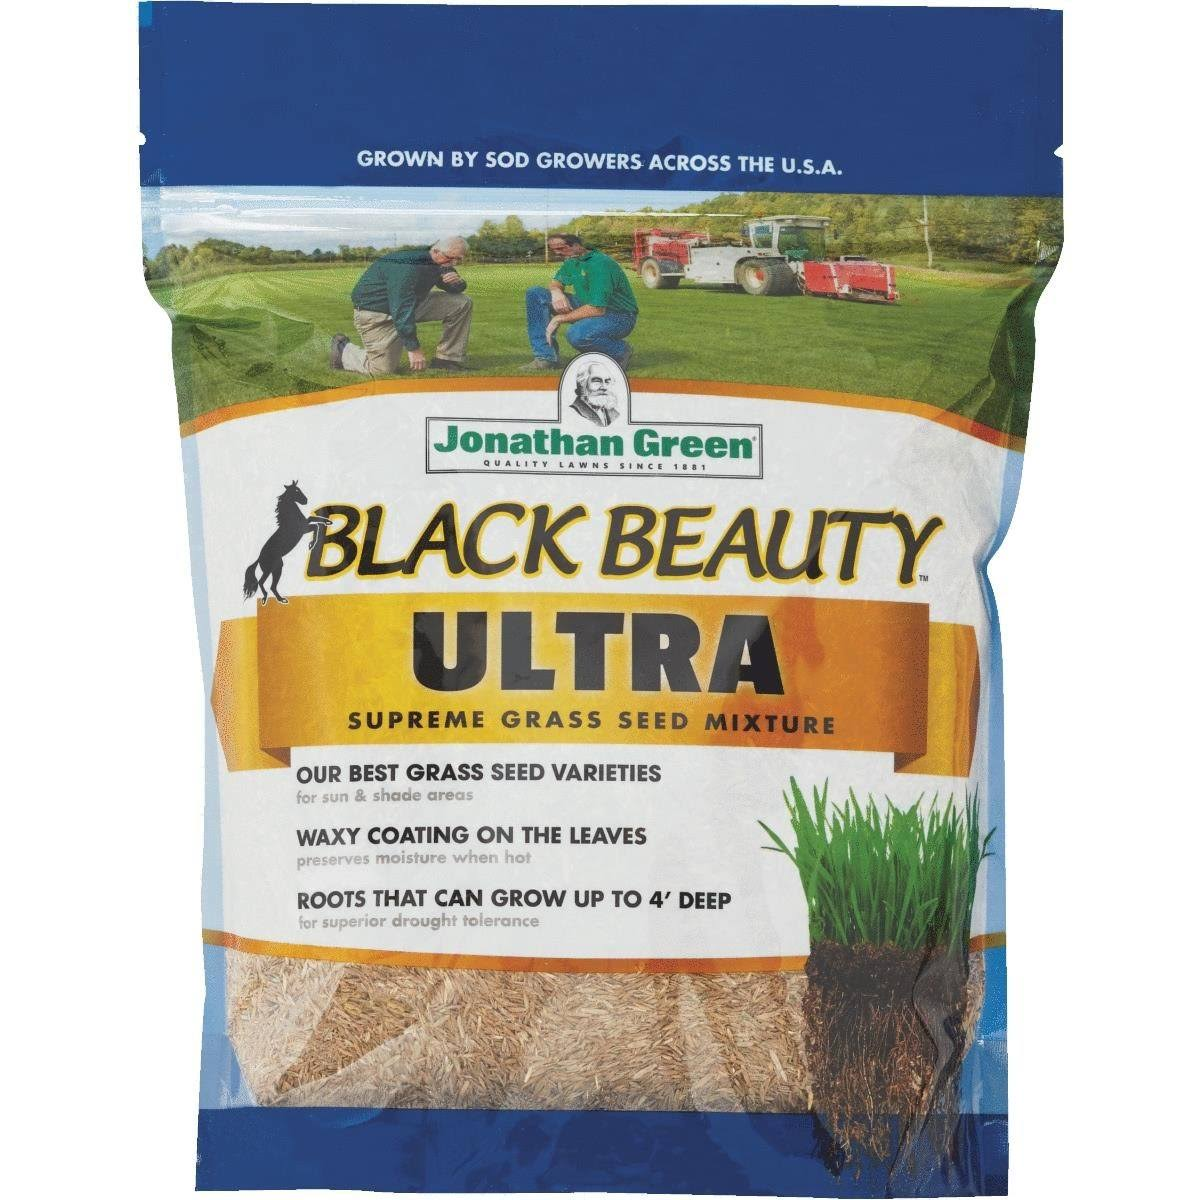 Jonathan Green Black Beauty Ultra Grass Seed Mixture - 1lb